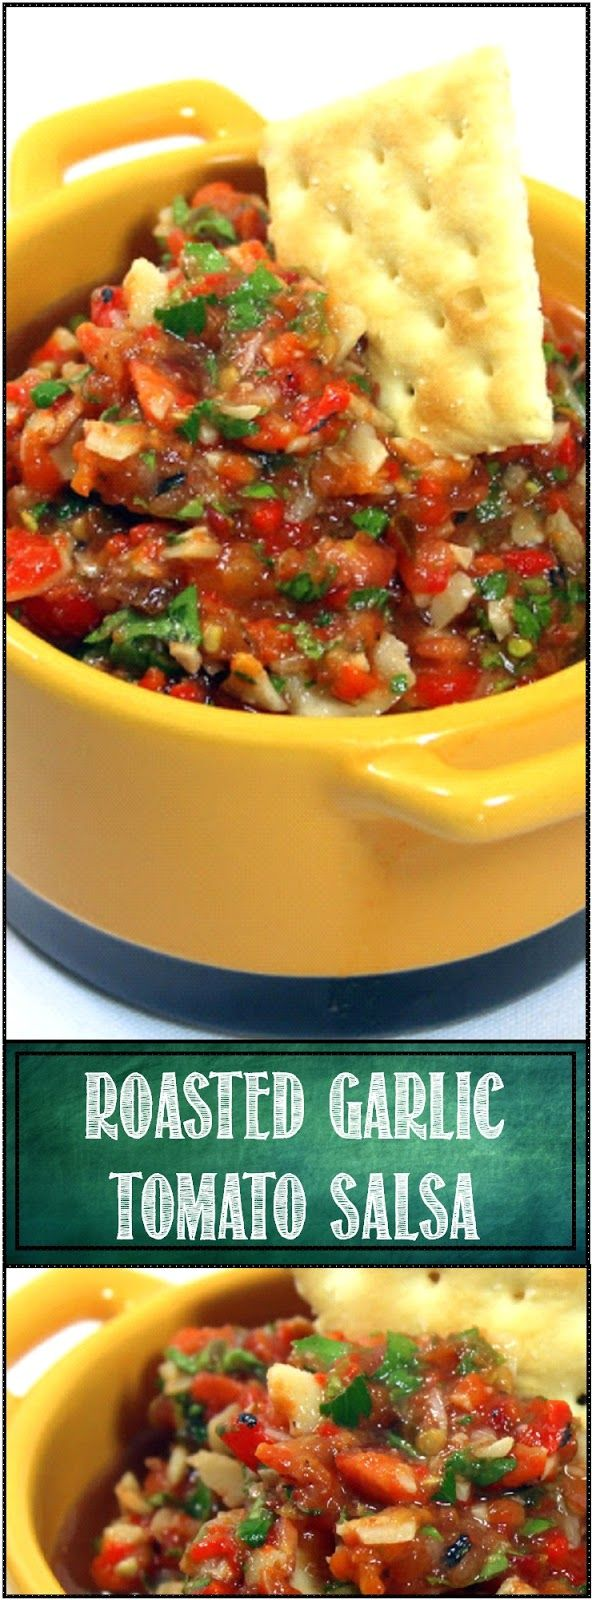 SWEET ROASTED GARLIC Tomato Salsa - This dish is fantastic as a started chip and dip, slather some of this on a hot dog, add as a compliment to a grilled Salmon fillet, grill a few toast points and serve up a wonderful fresh Bruschetta (dare I suggest a single cube of Cantaloupe on a fork with a bit of this... Really!).